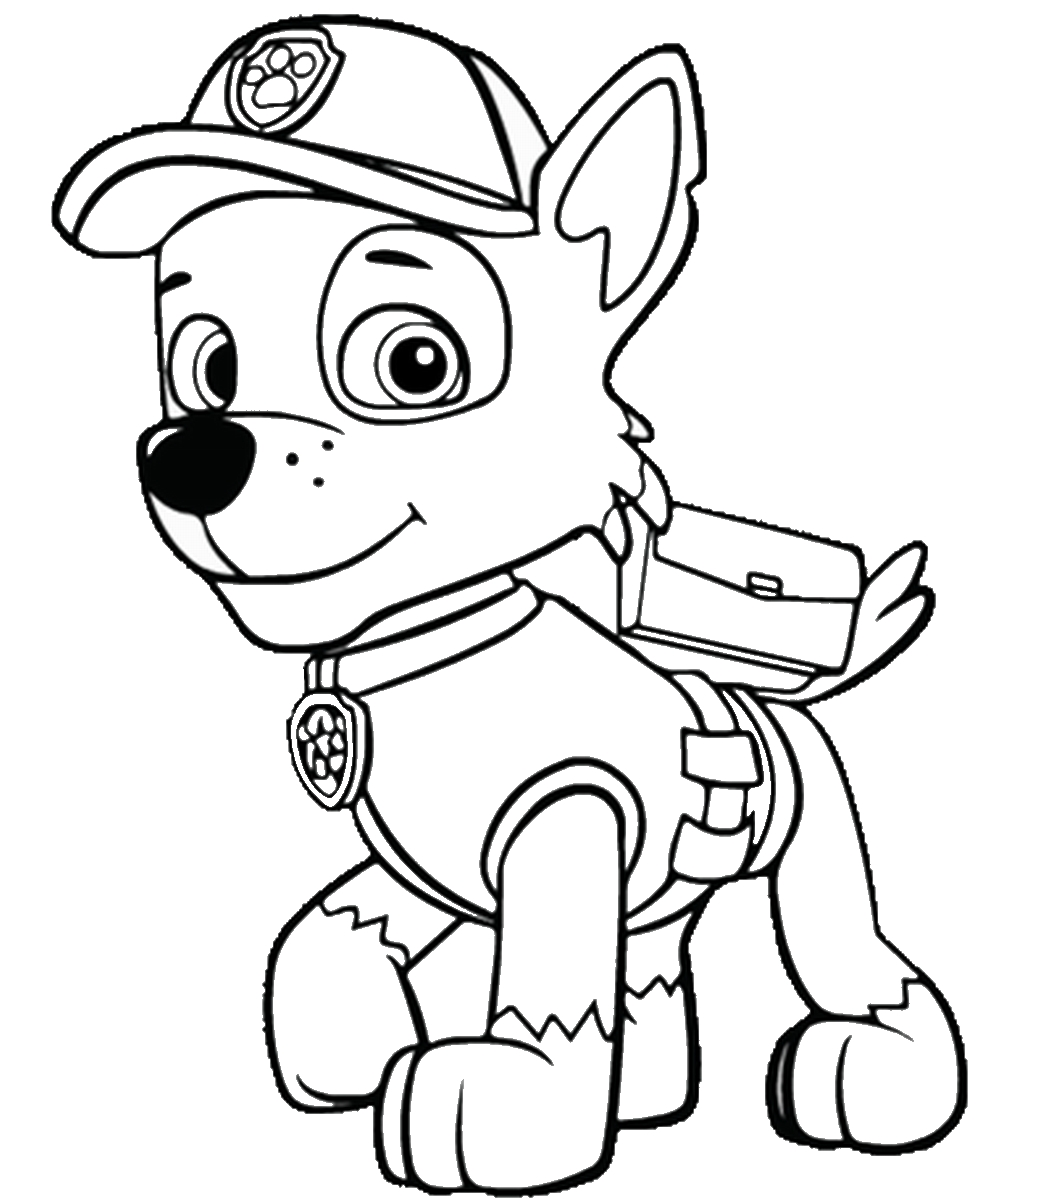 free paw patrol coloring pages - q=paw patrol